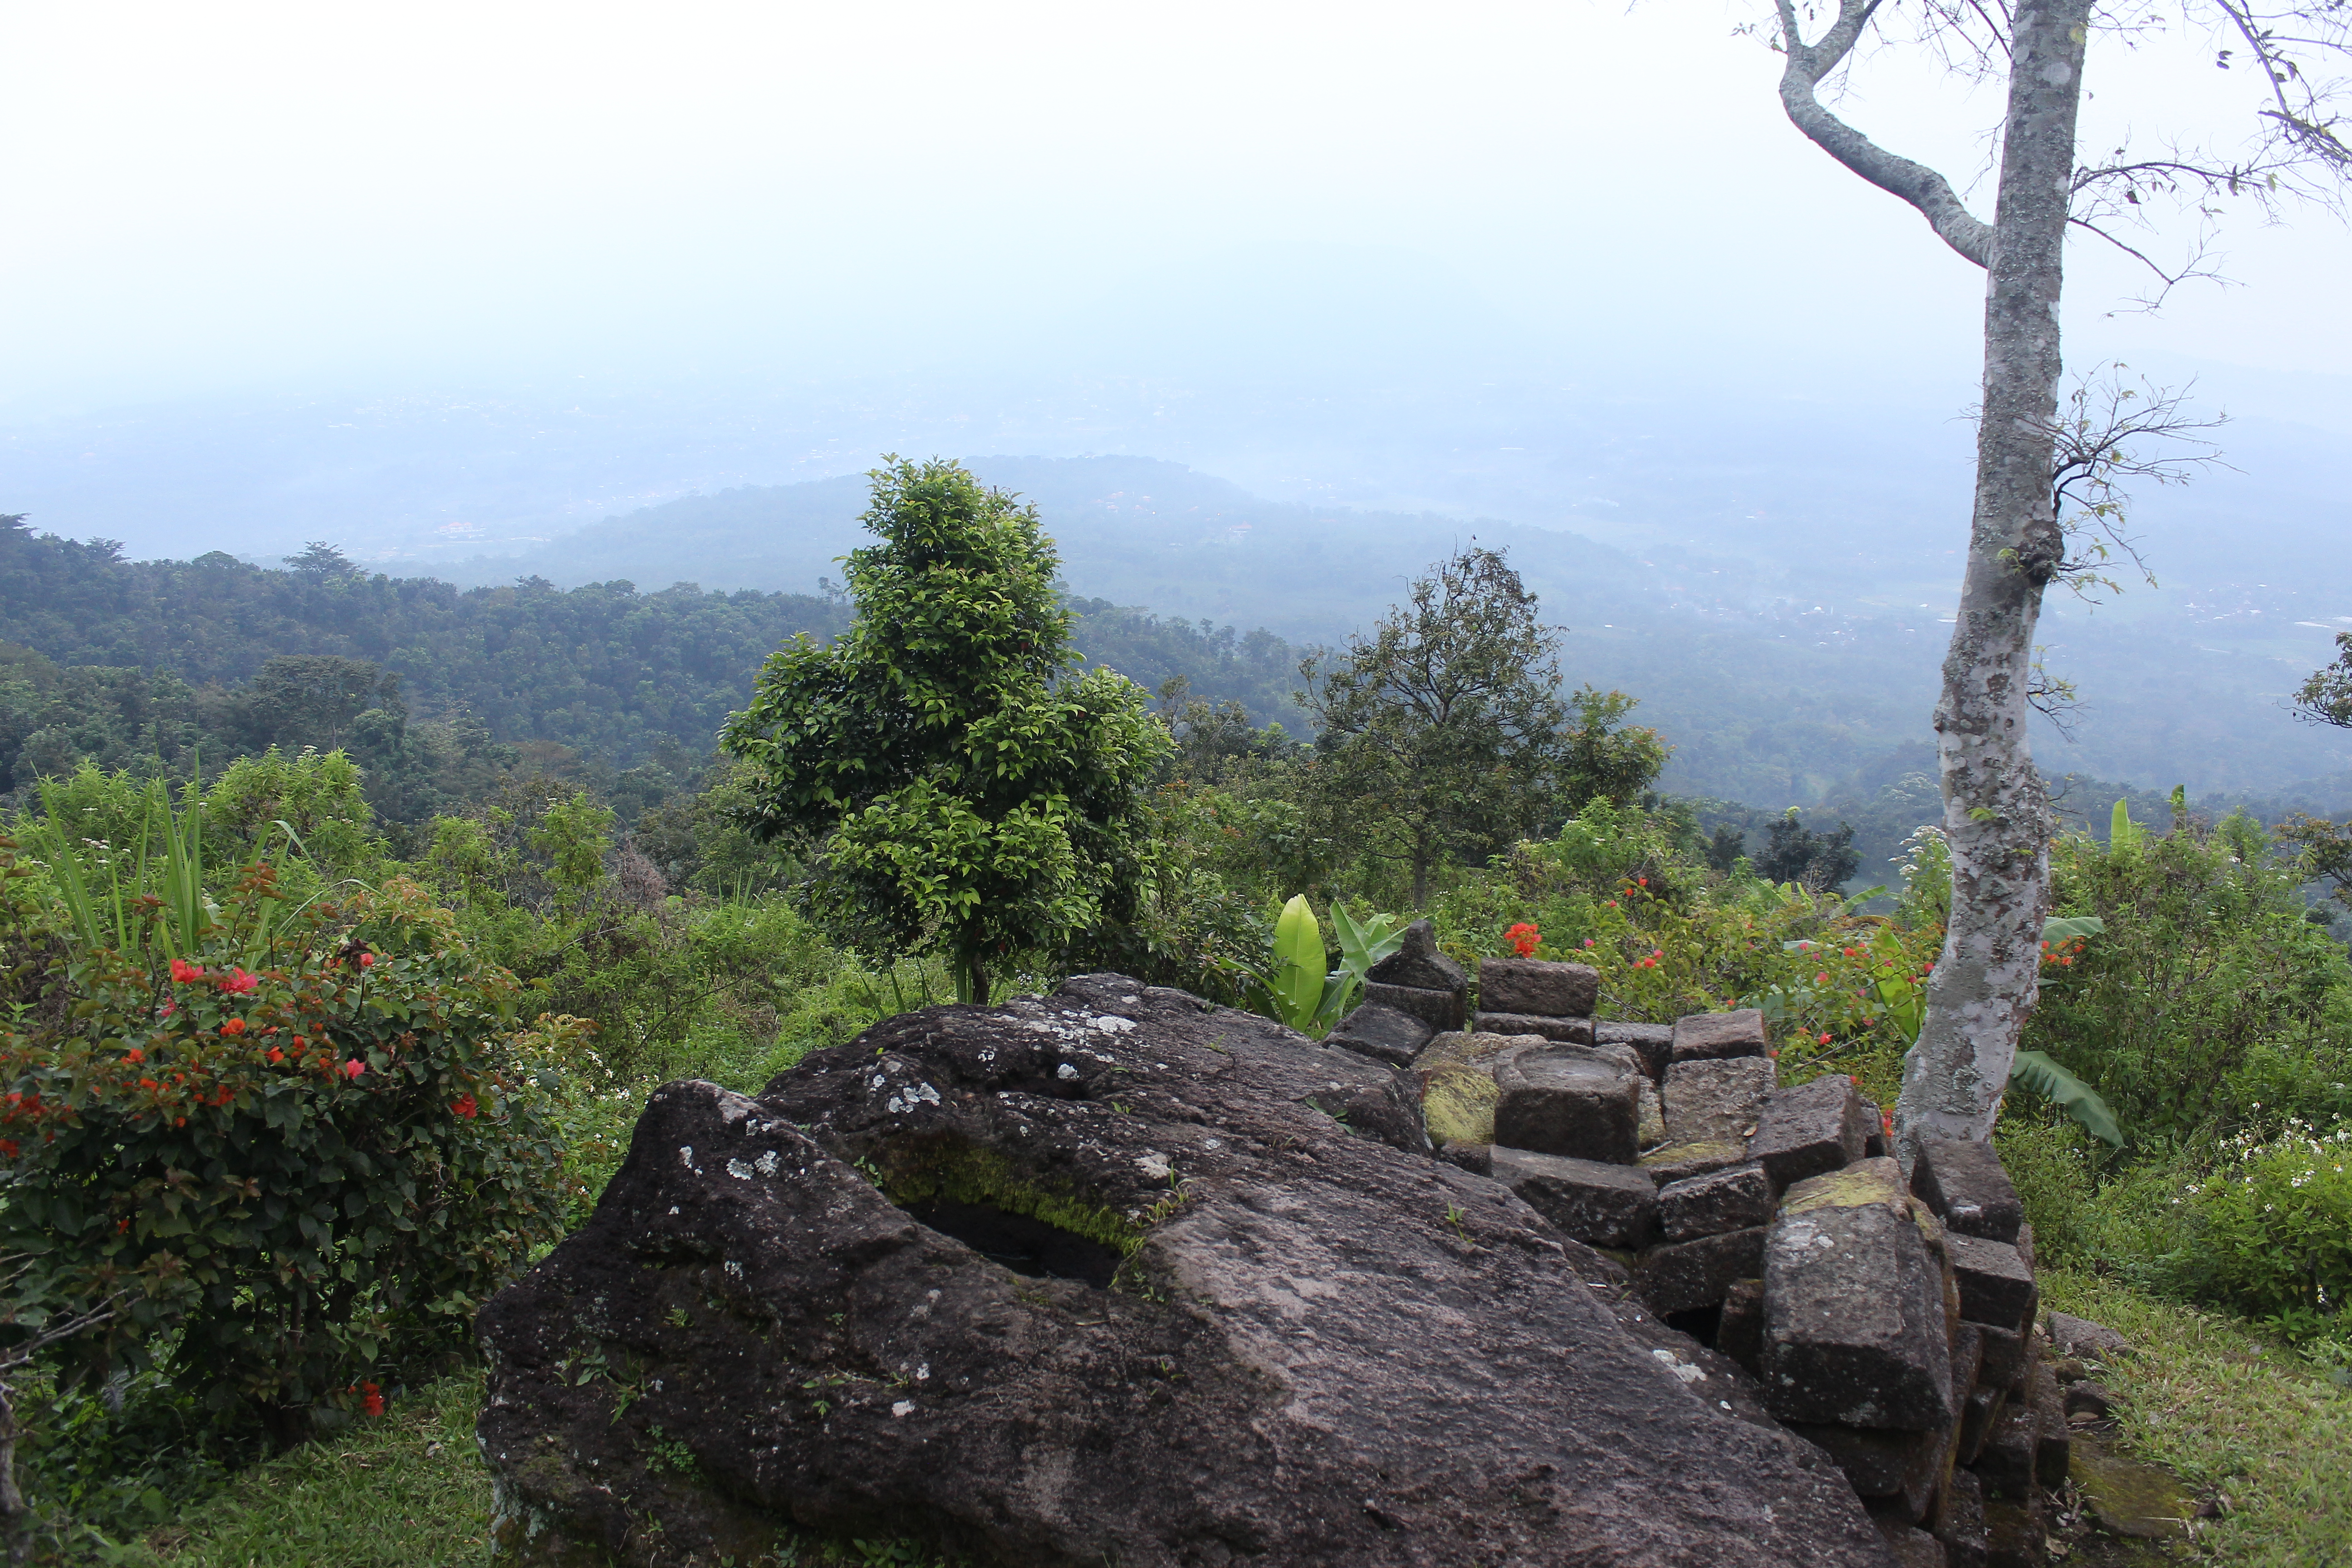 View from a mountaintop over jungle and rock